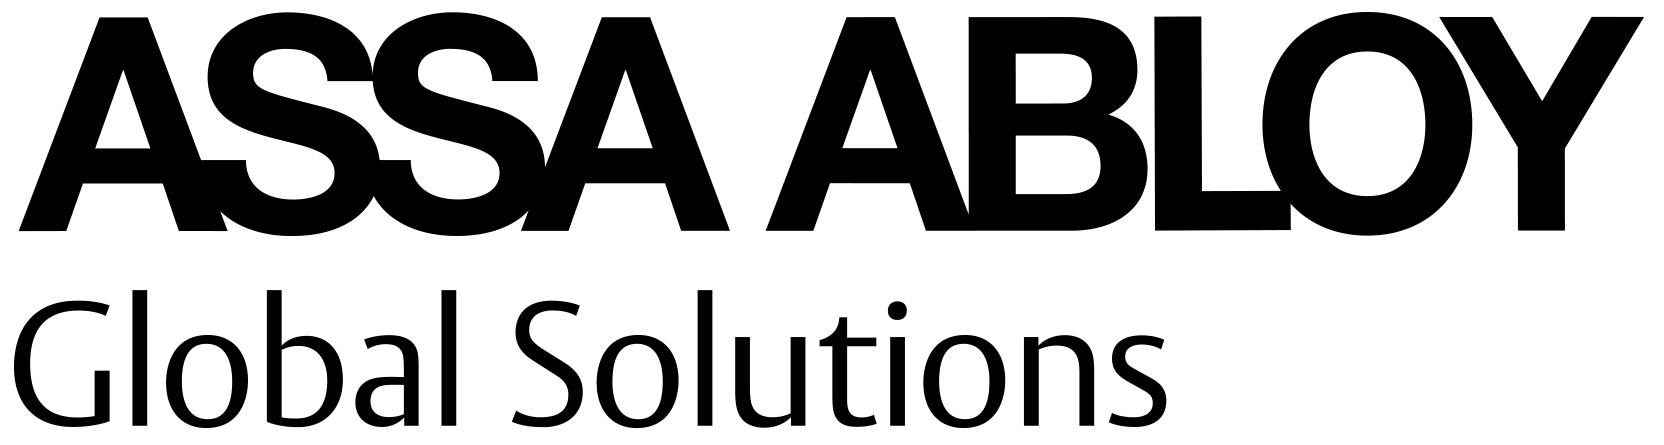 ASSA ABLOY Global Solutions Logo